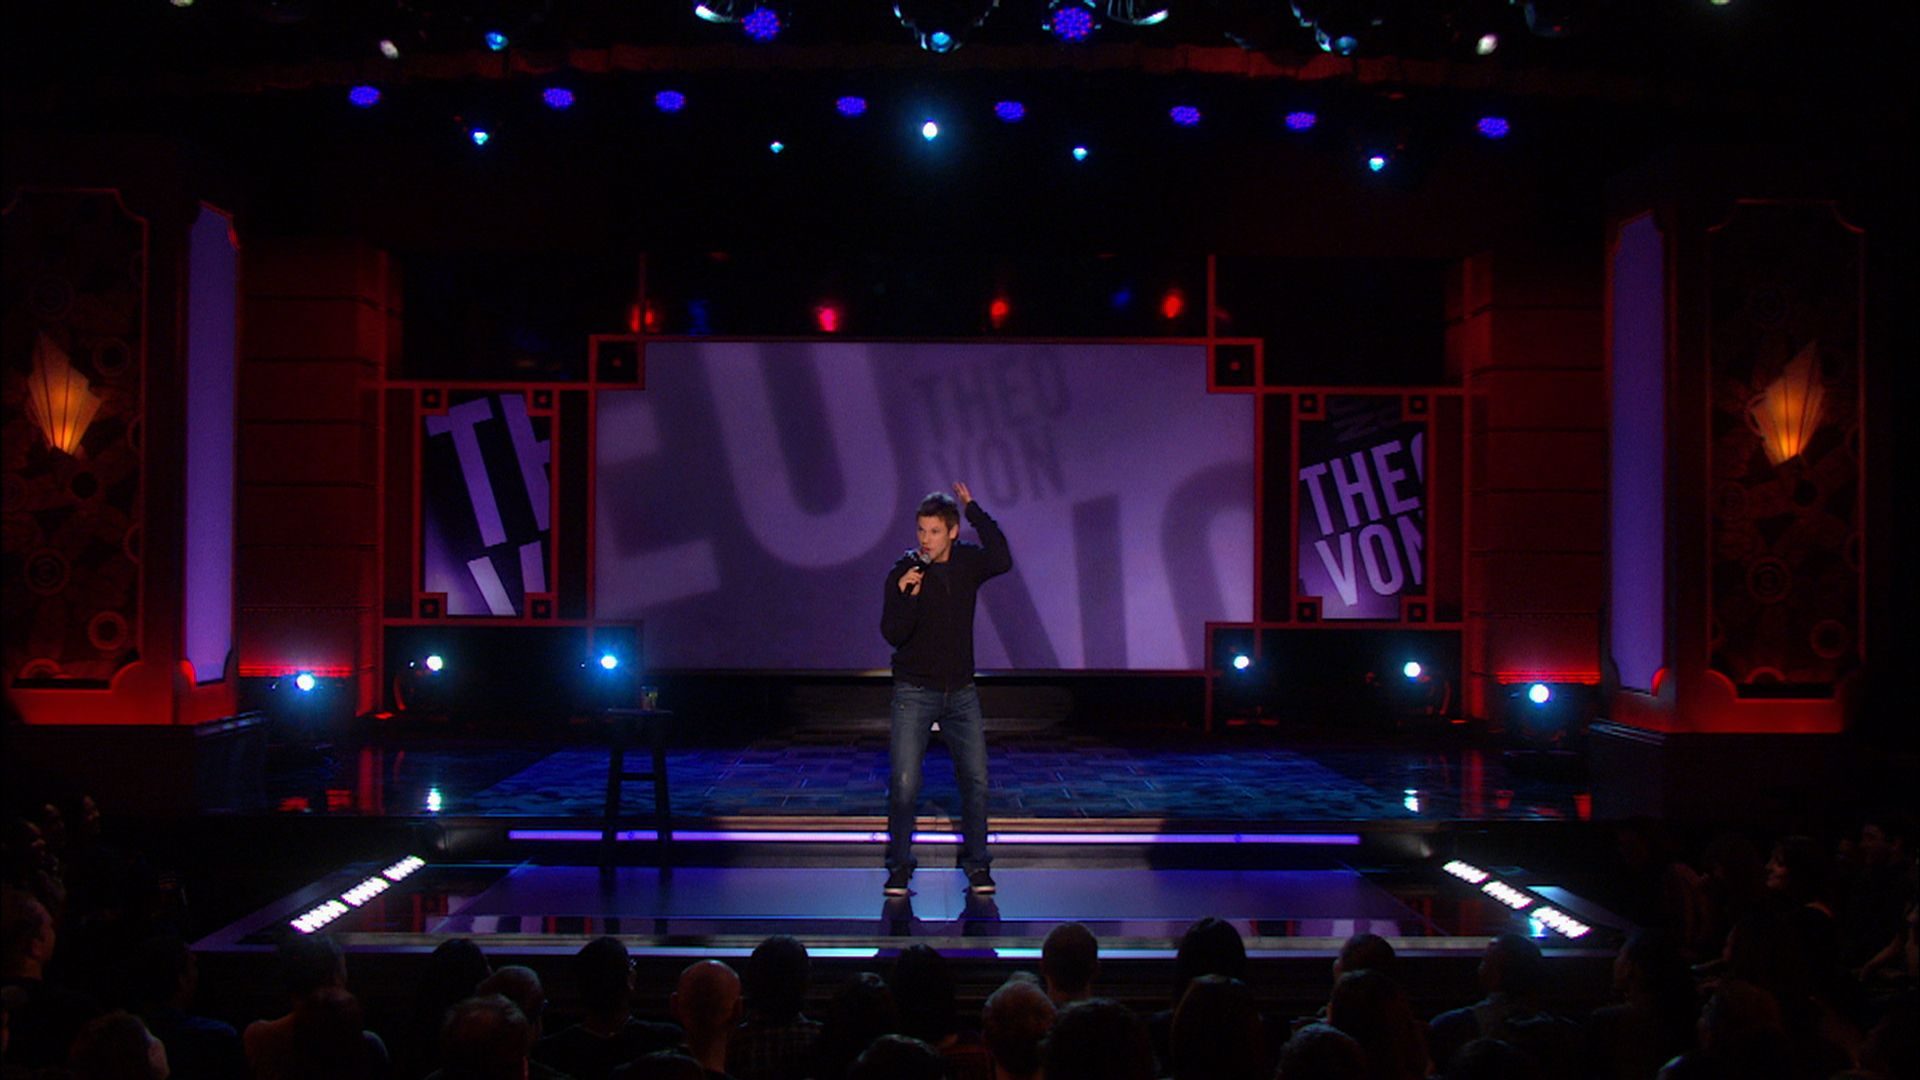 Stand up Comedy Stage Wallpaper Theo Von | Stand-up Comedian